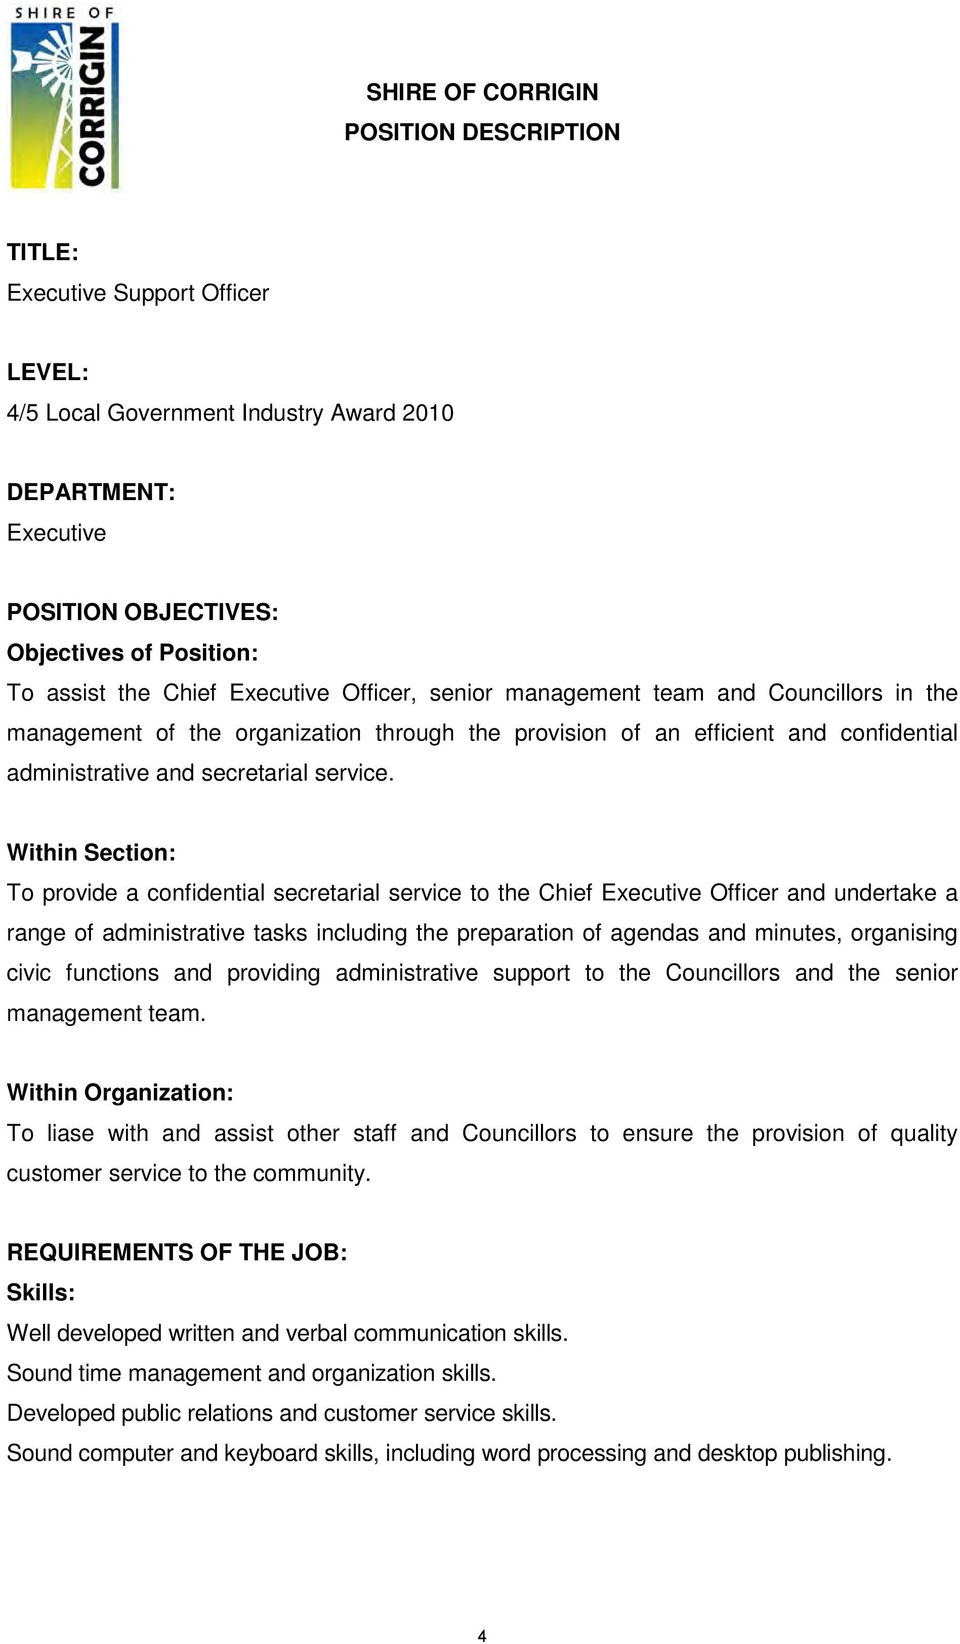 Within Section: To provide a confidential secretarial service to the Chief Executive Officer and undertake a range of administrative tasks including the preparation of agendas and minutes, organising